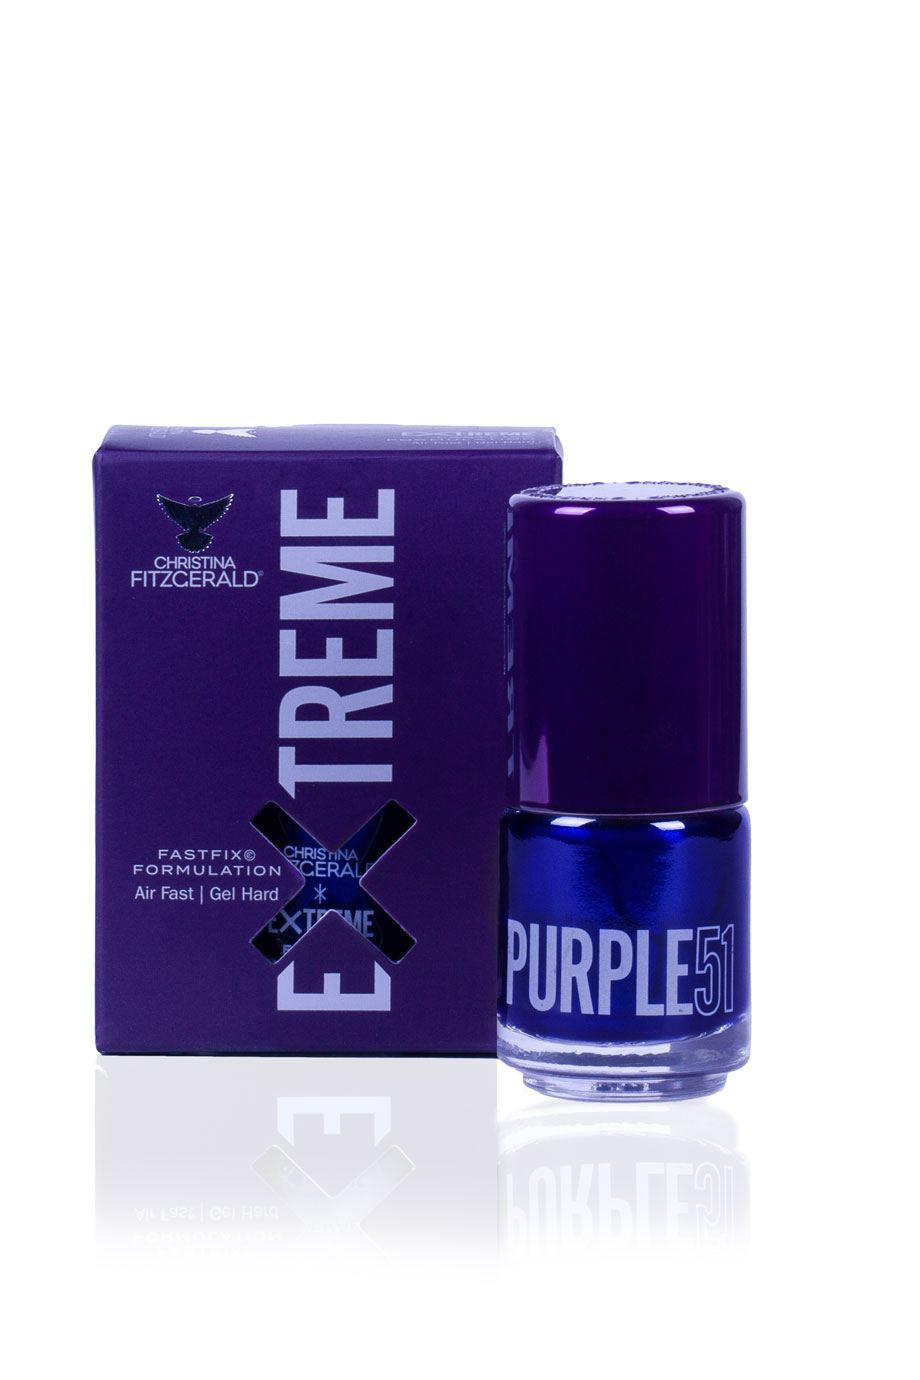 Лак для ногтей Extreme - Purple 51 в интернет-магазине Authentica.love